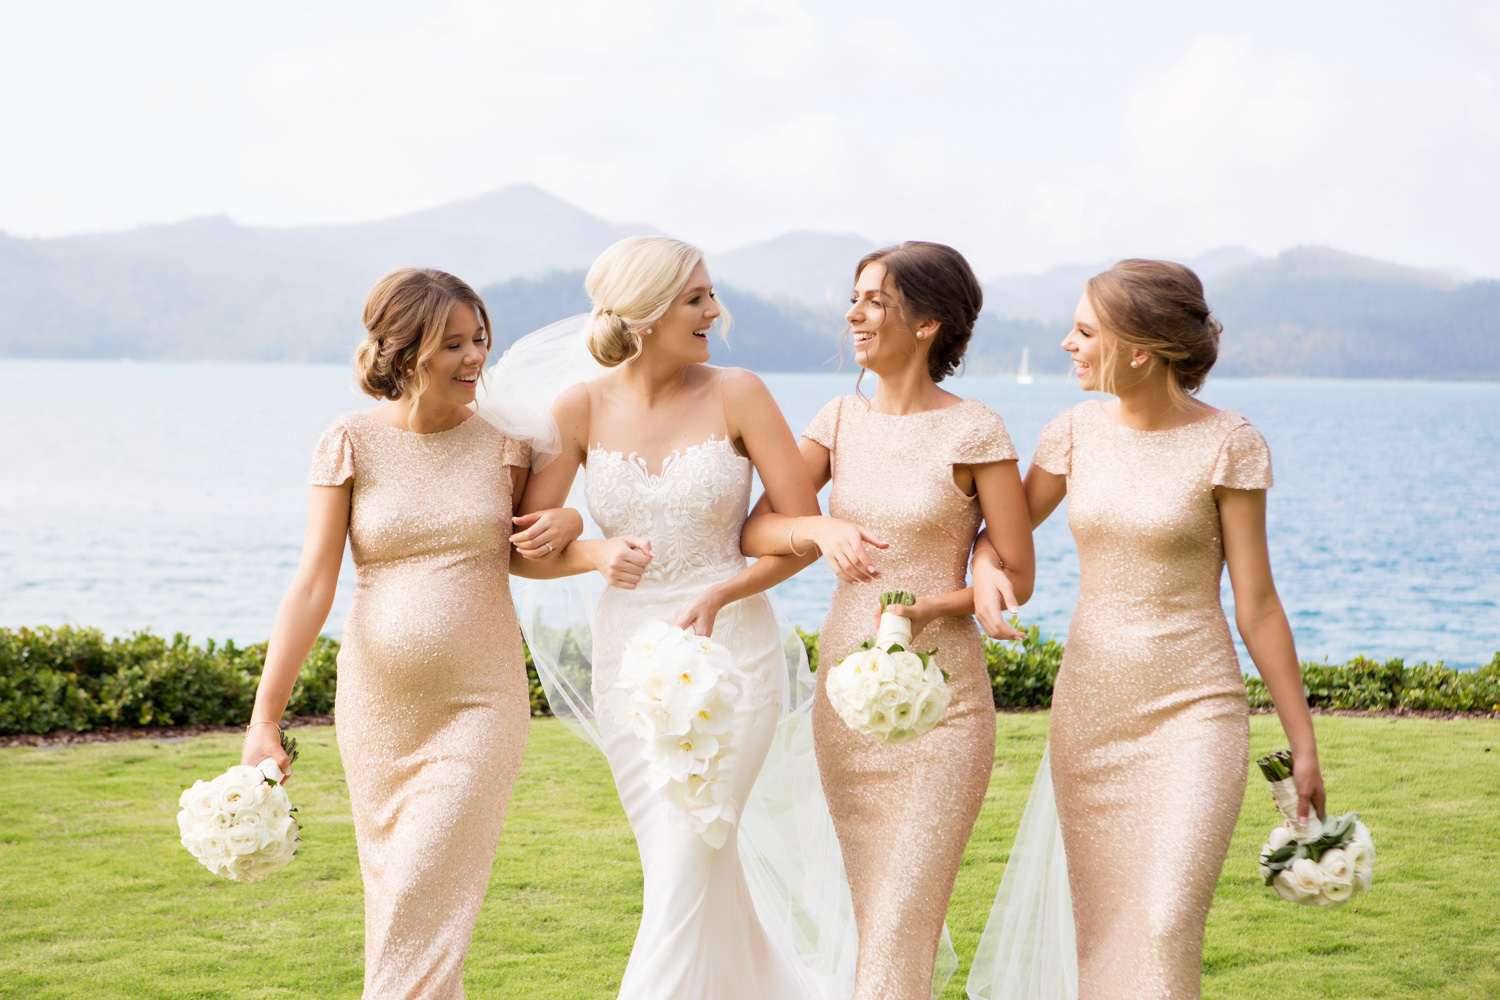 wedding-0150-qualia-sequins-rosegold-bridesmaids-australia.jpg